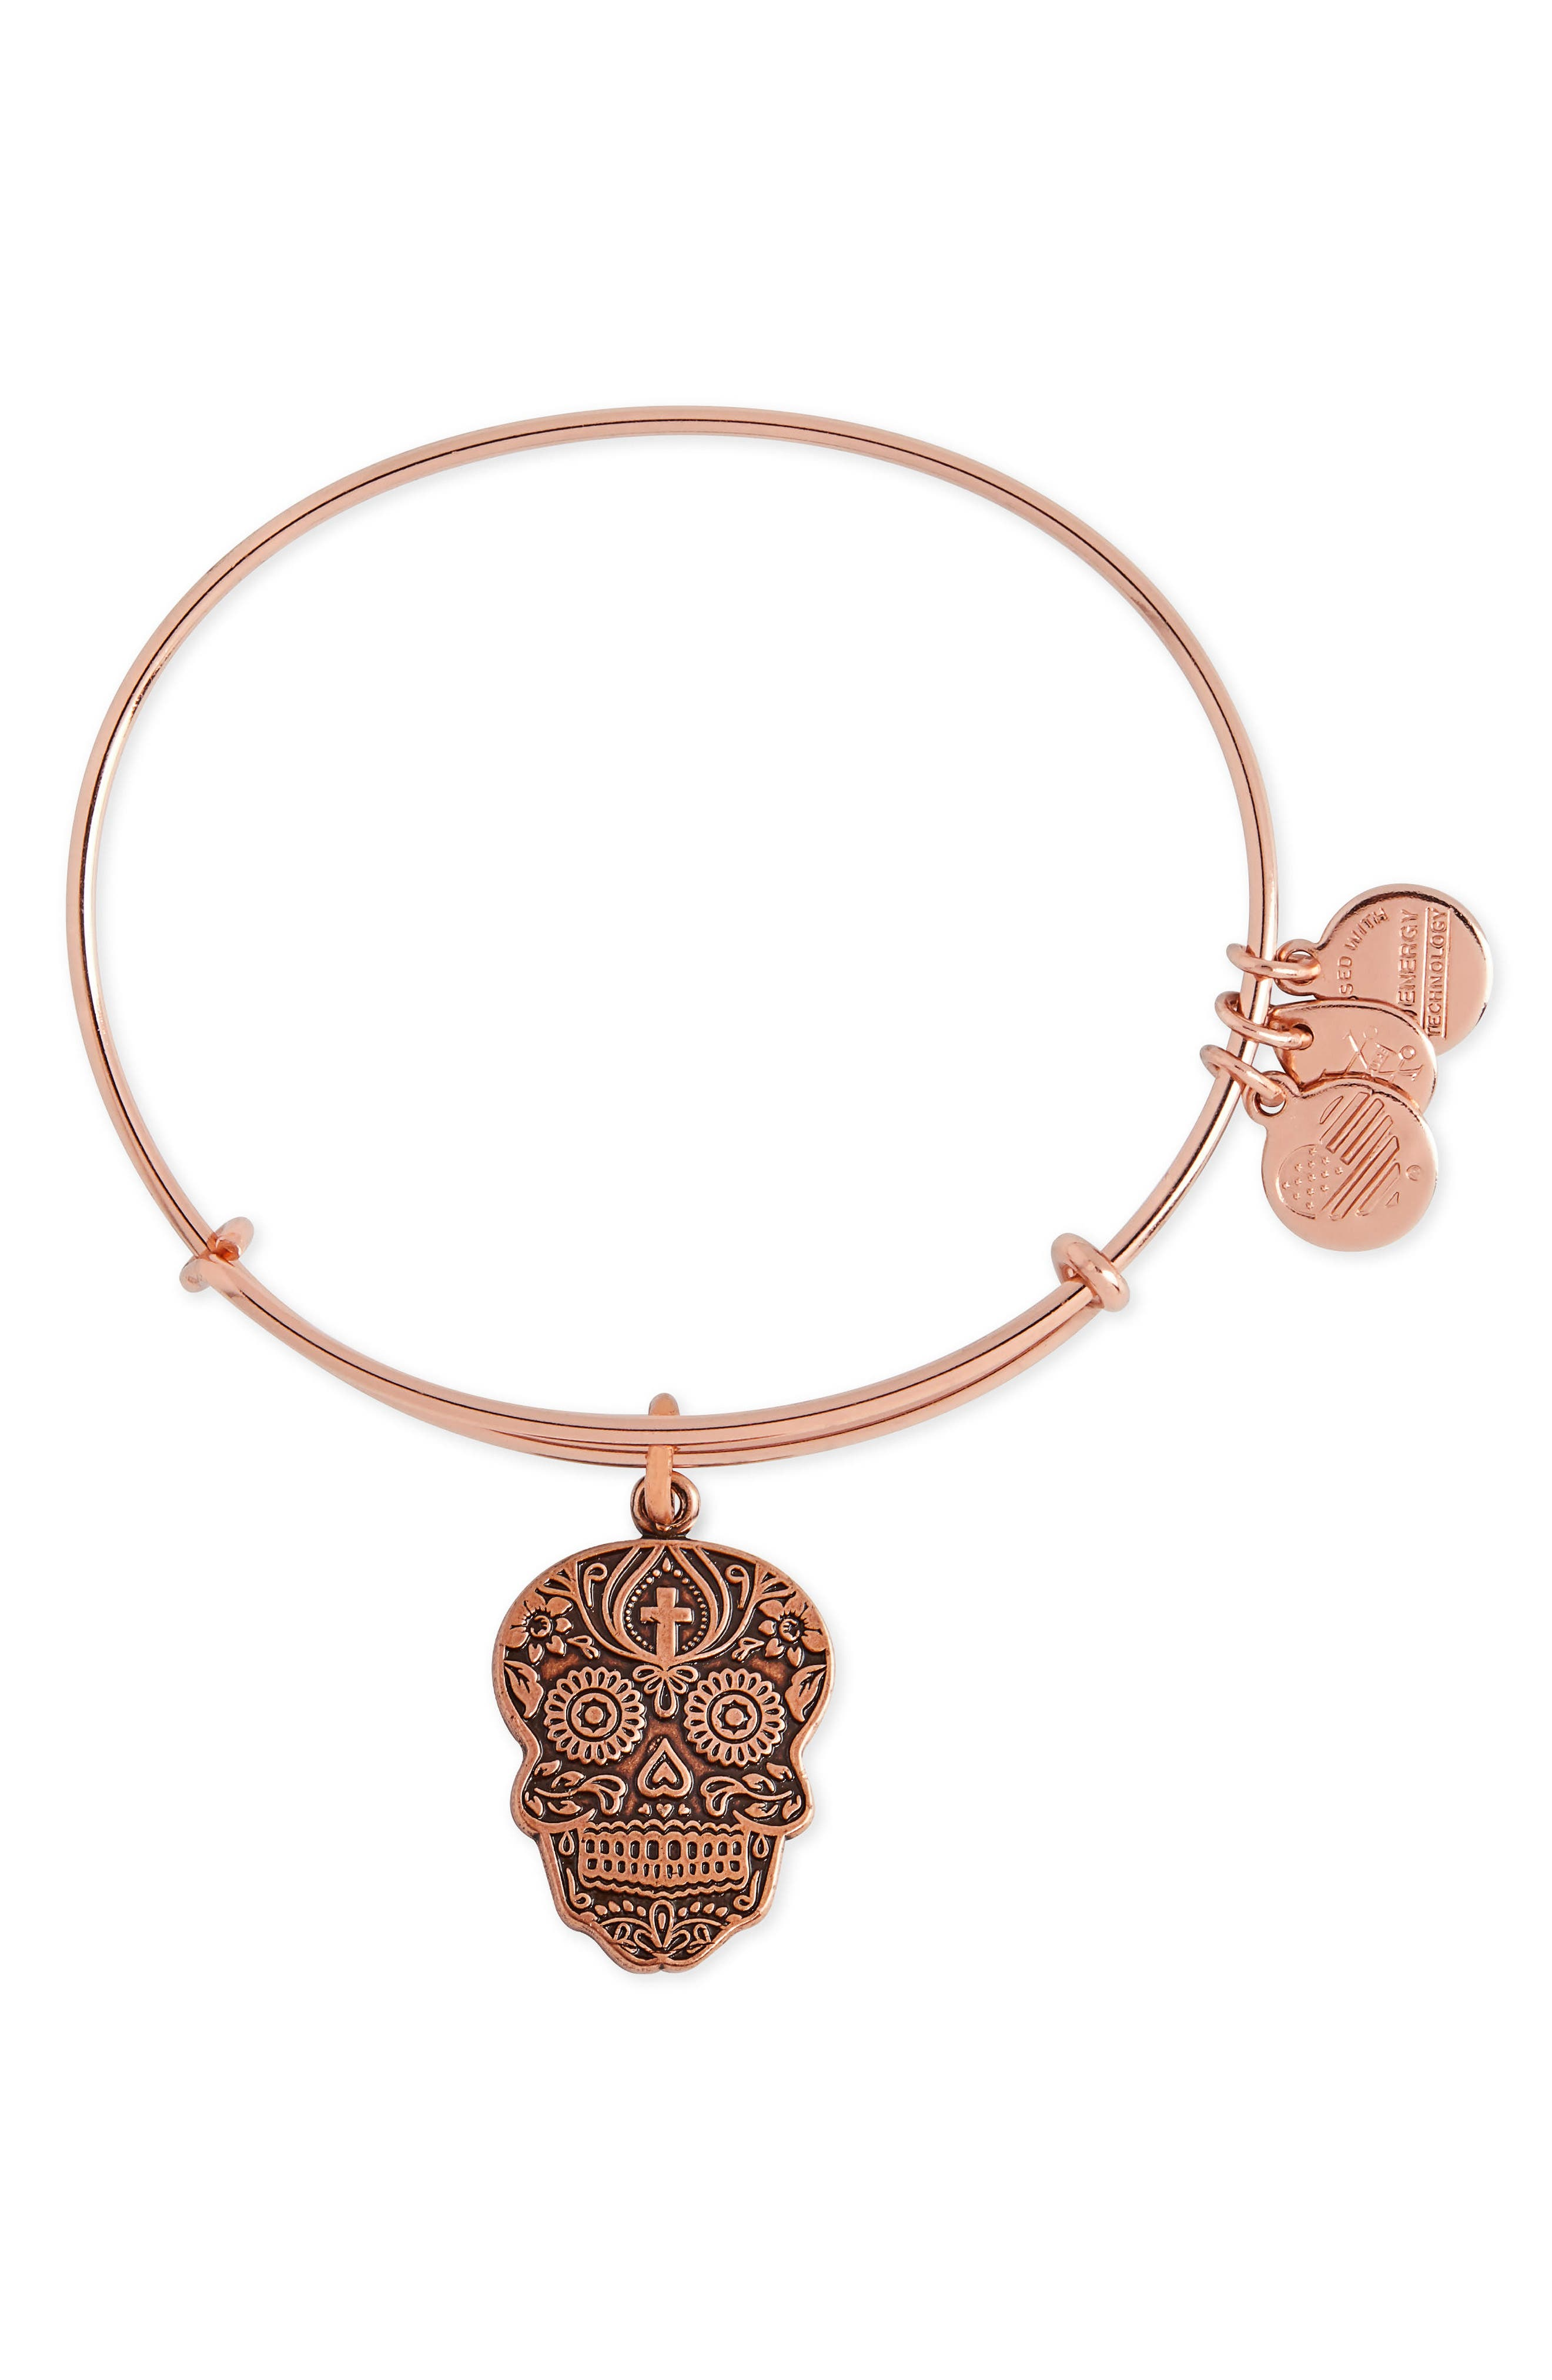 Main Image - Alex and Ani 'Calavera' Adjustable Wire Bangle (Nordstrom Exclusive)